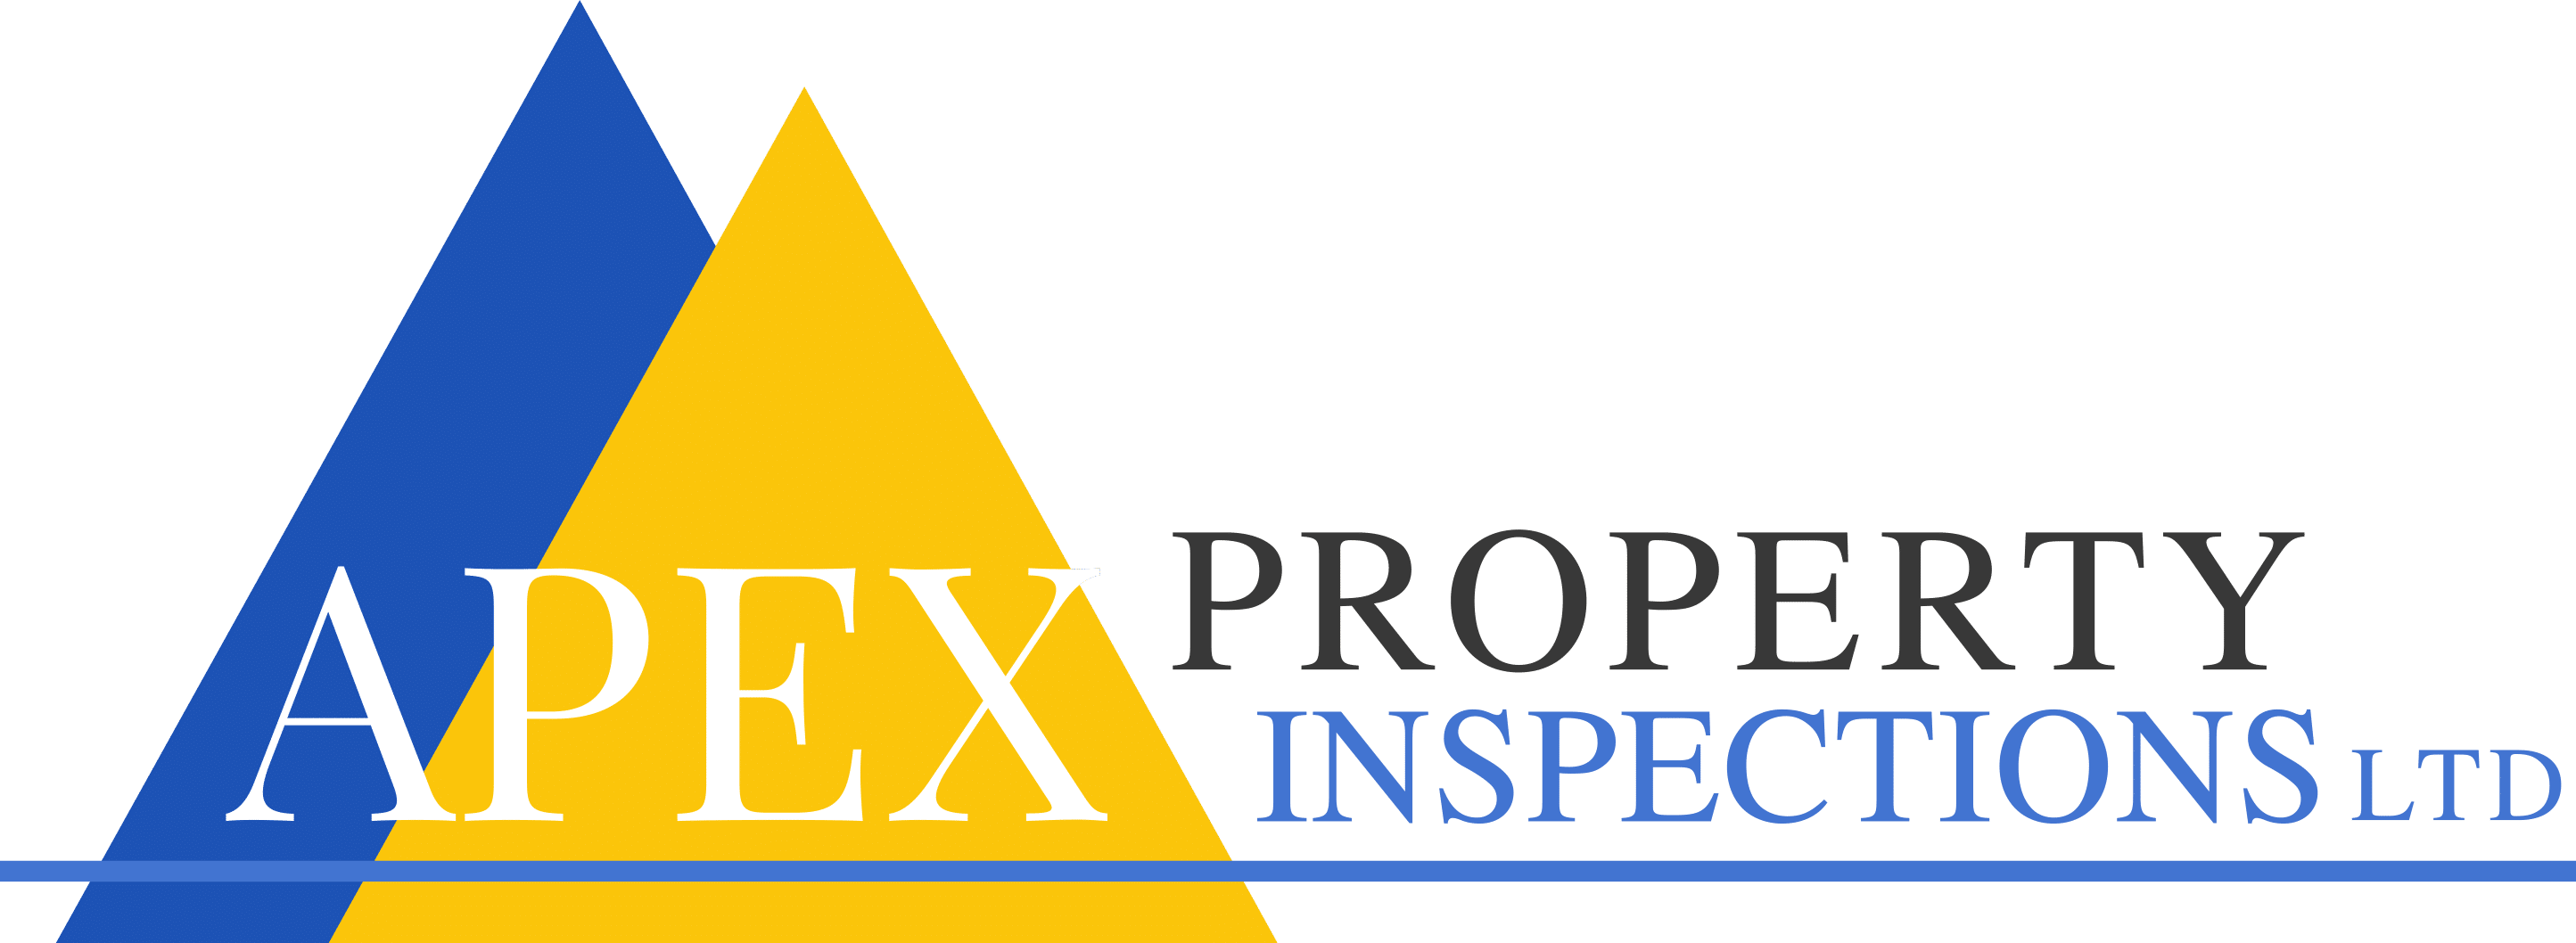 APEX Property Inspections